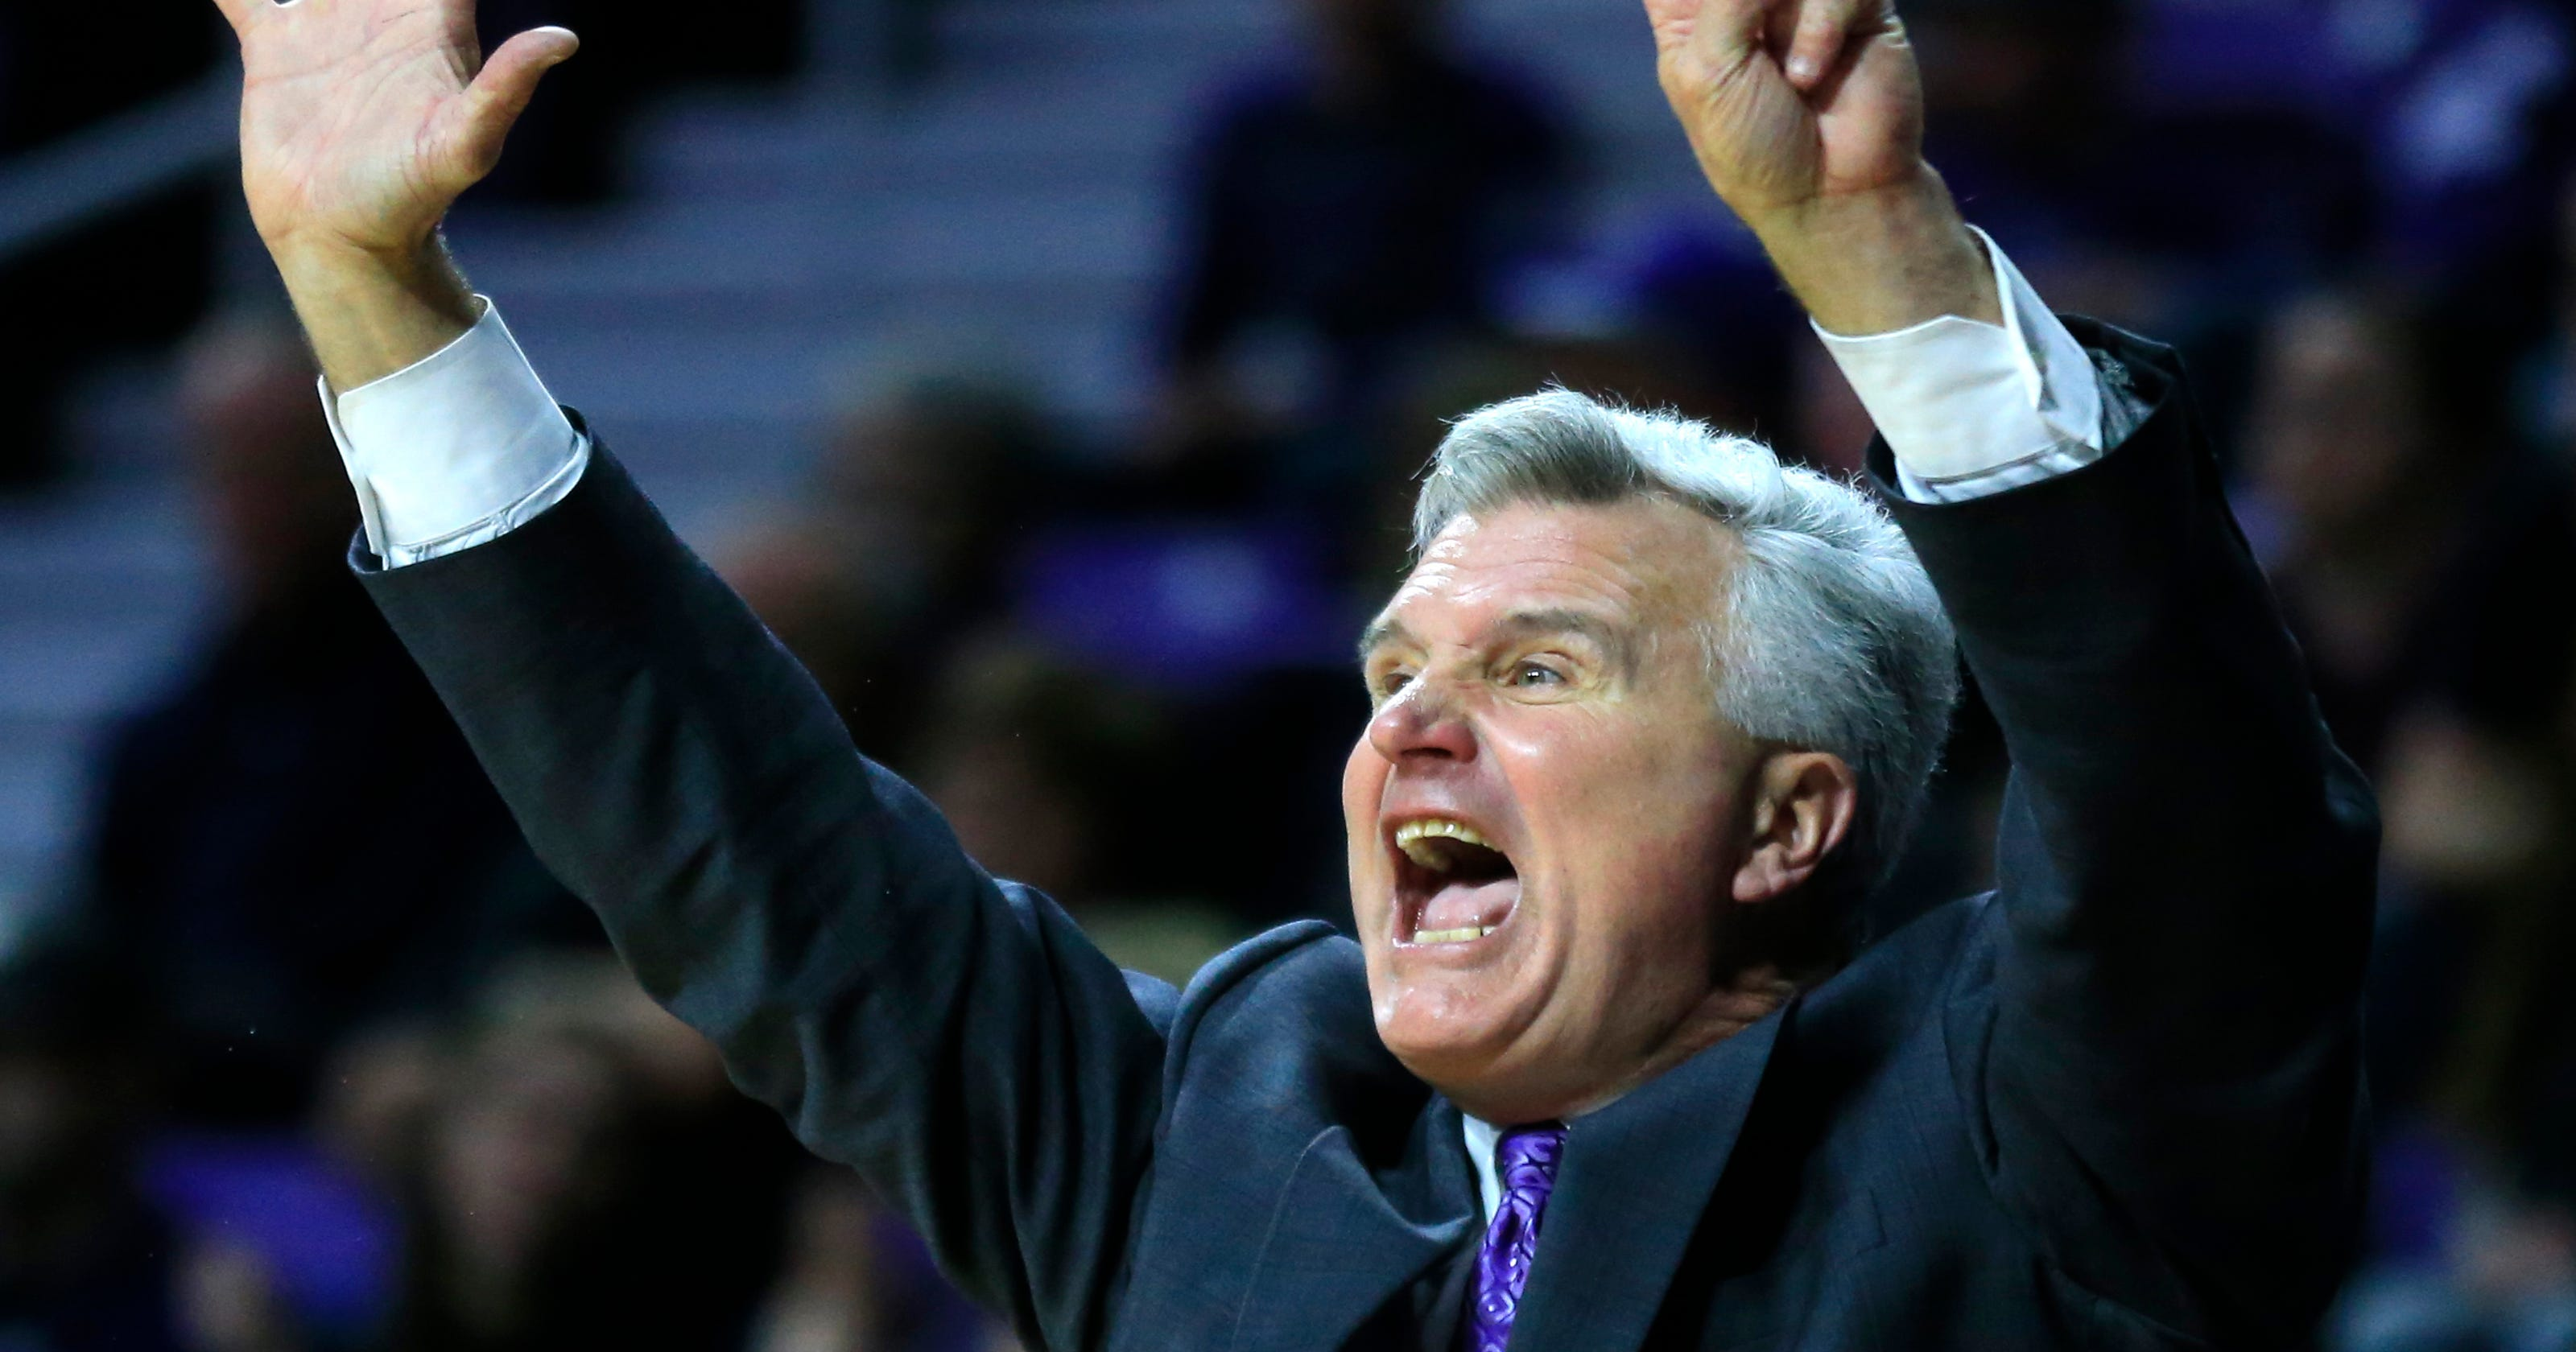 K State Basketball Schedule 2020-21 K State coach Weber agrees to 2 year contract extension